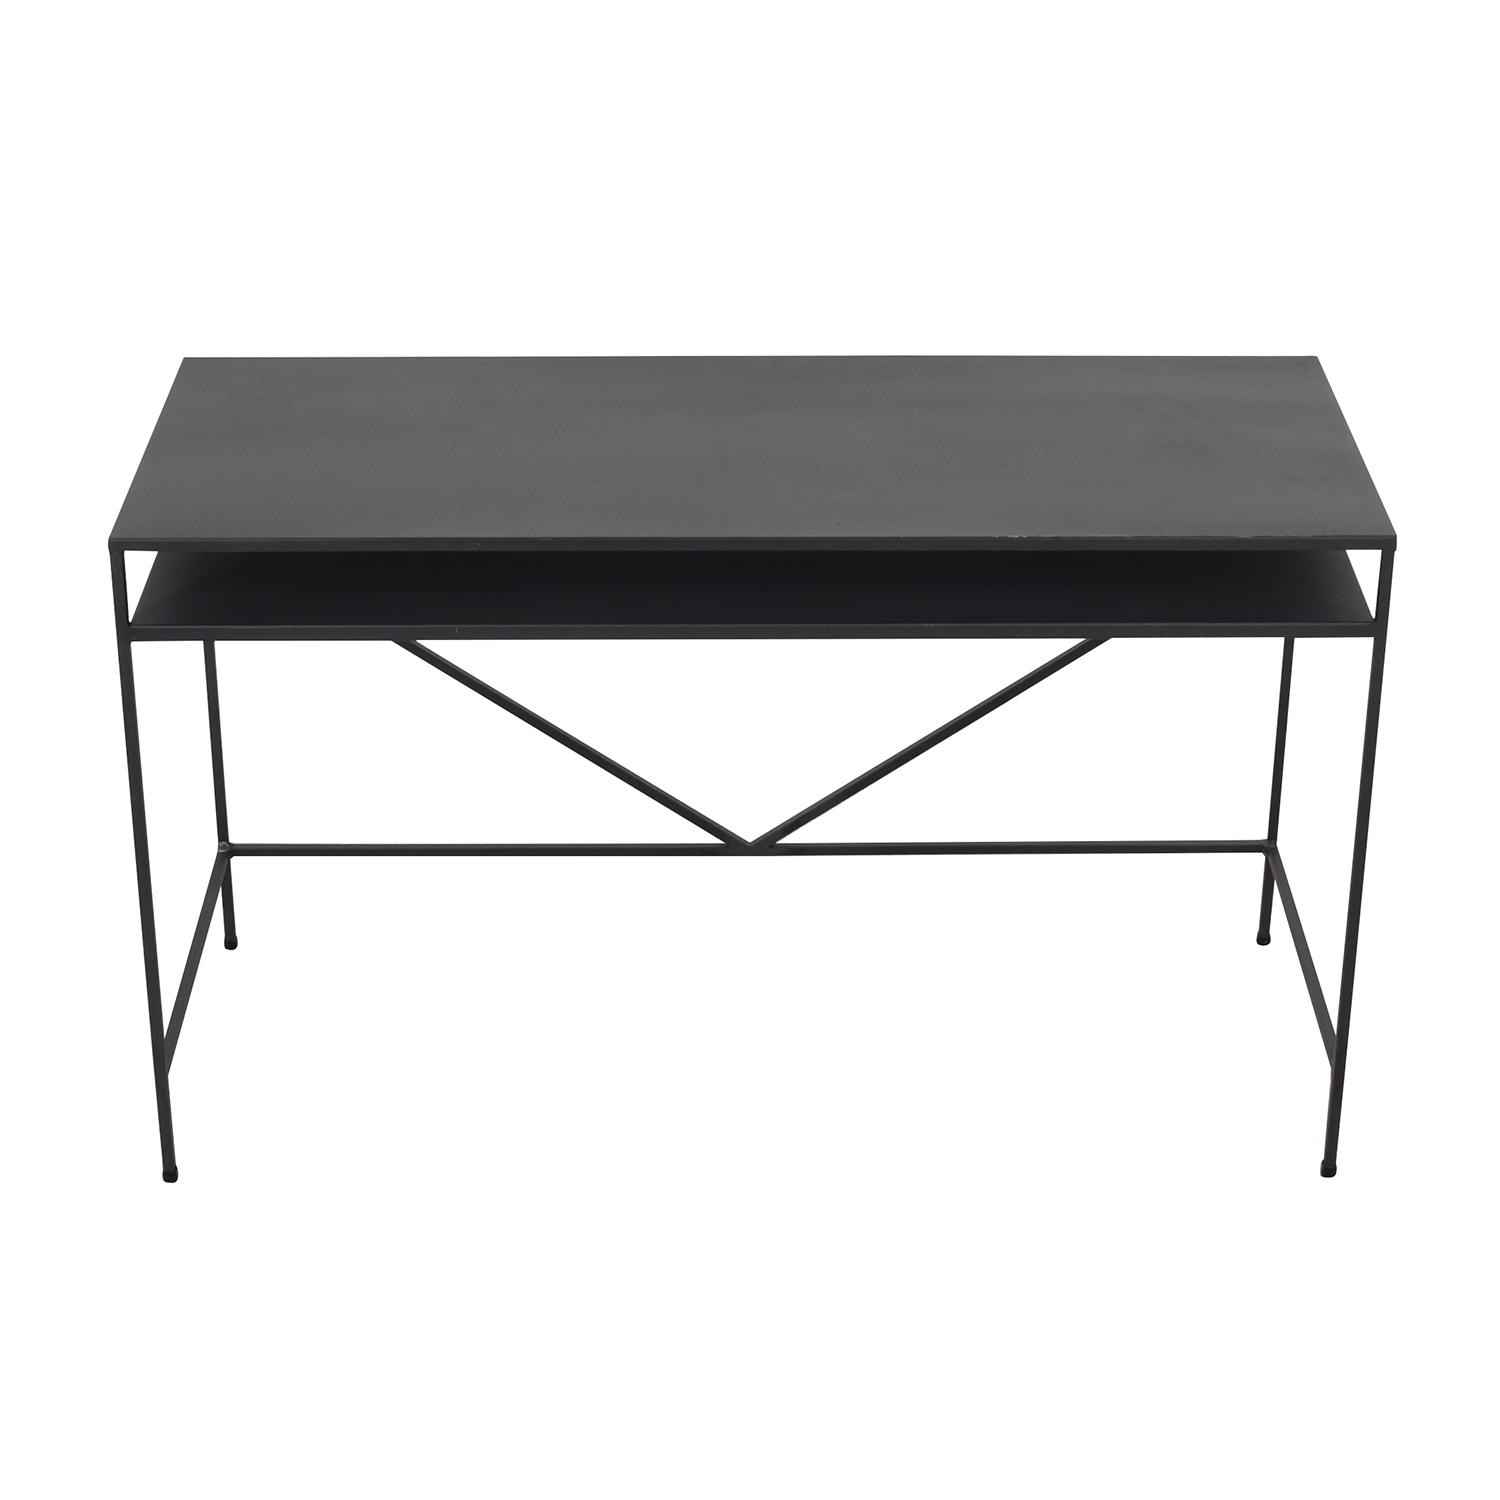 Room & Board Slim Desk sale